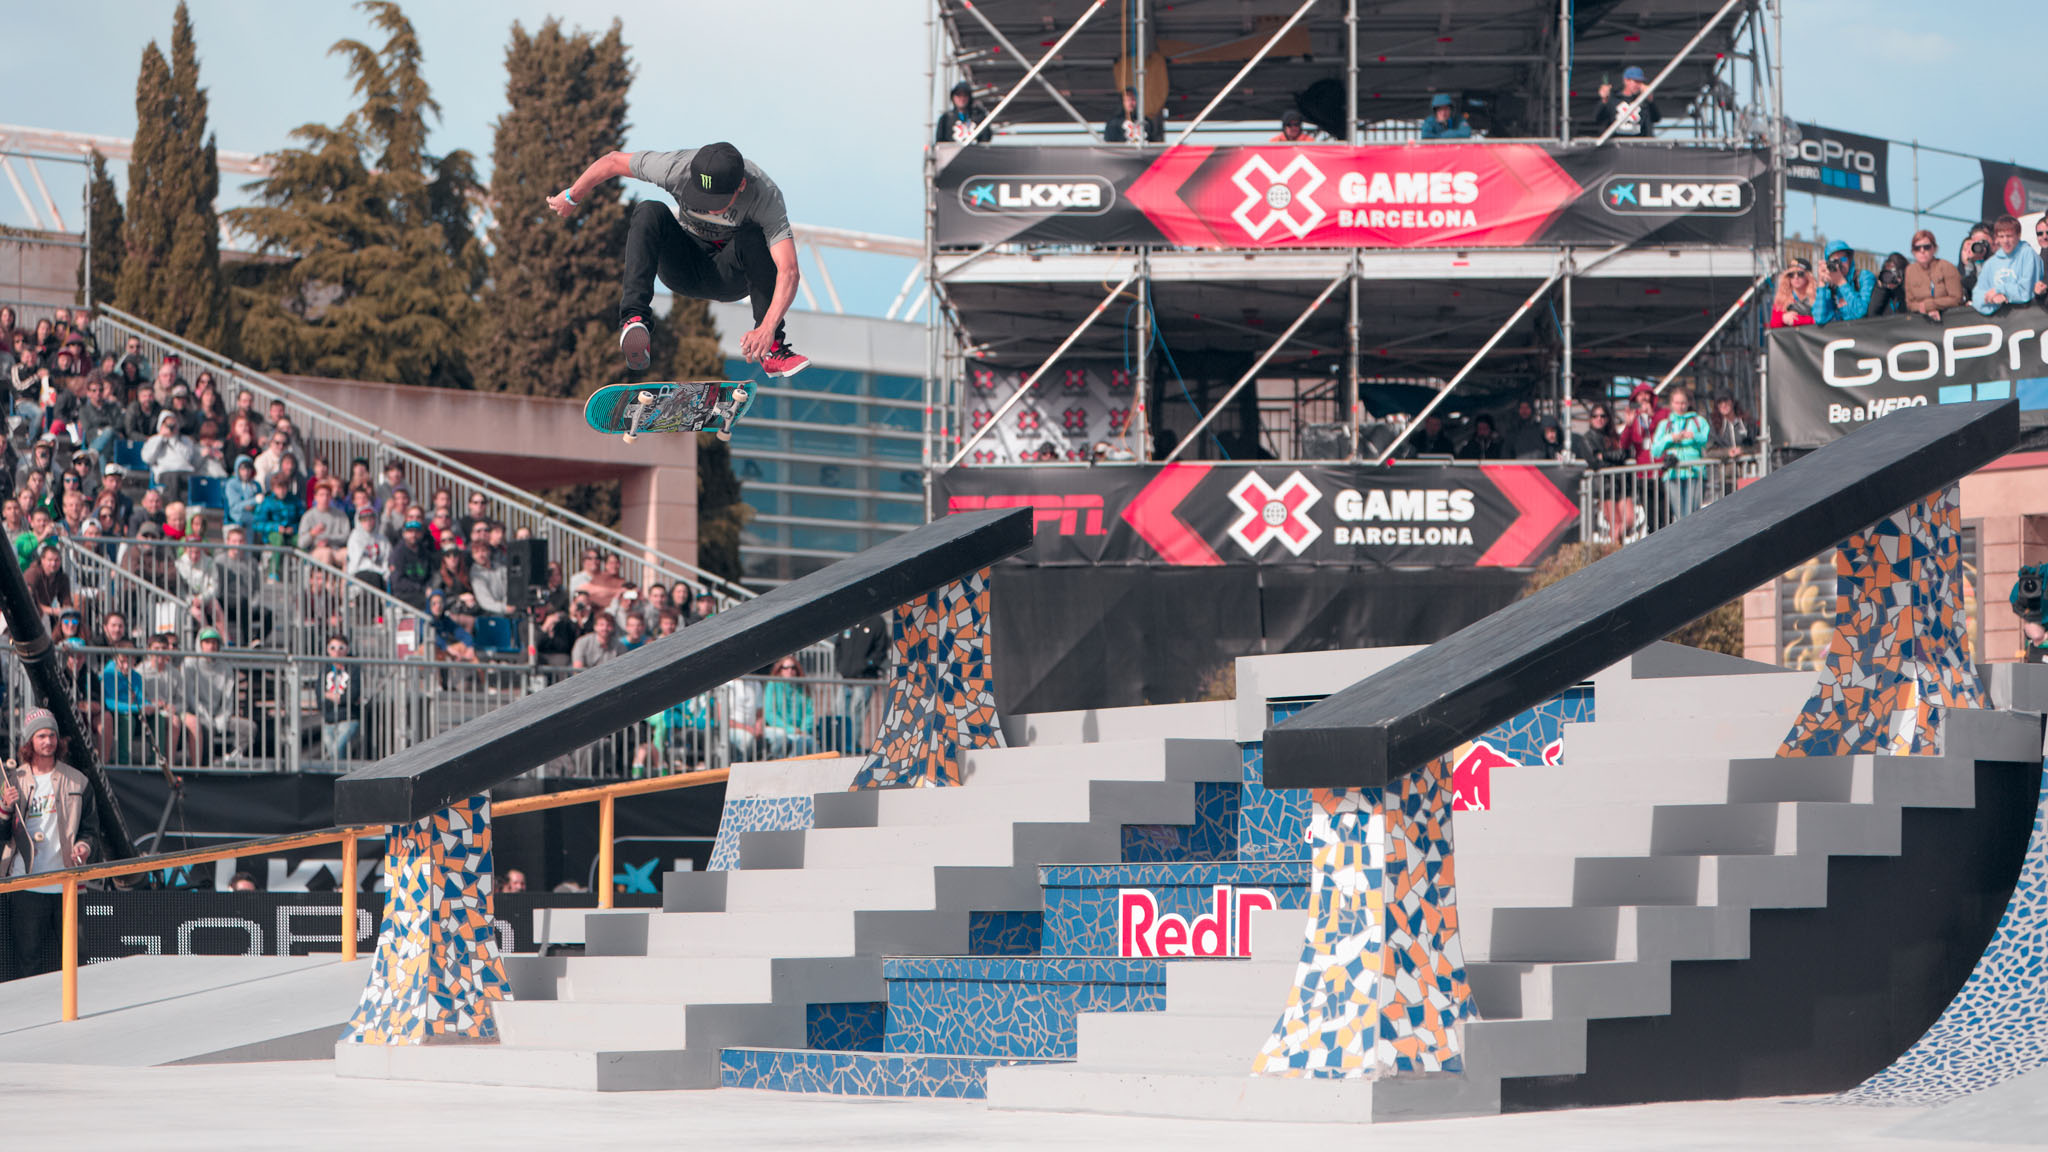 After nearly failing to qualify for finals Friday at X Games Barcelona, the reigning Skateboard Street gold medalist came out on top, beating out P-Rod for the win with his final trick in the contest.